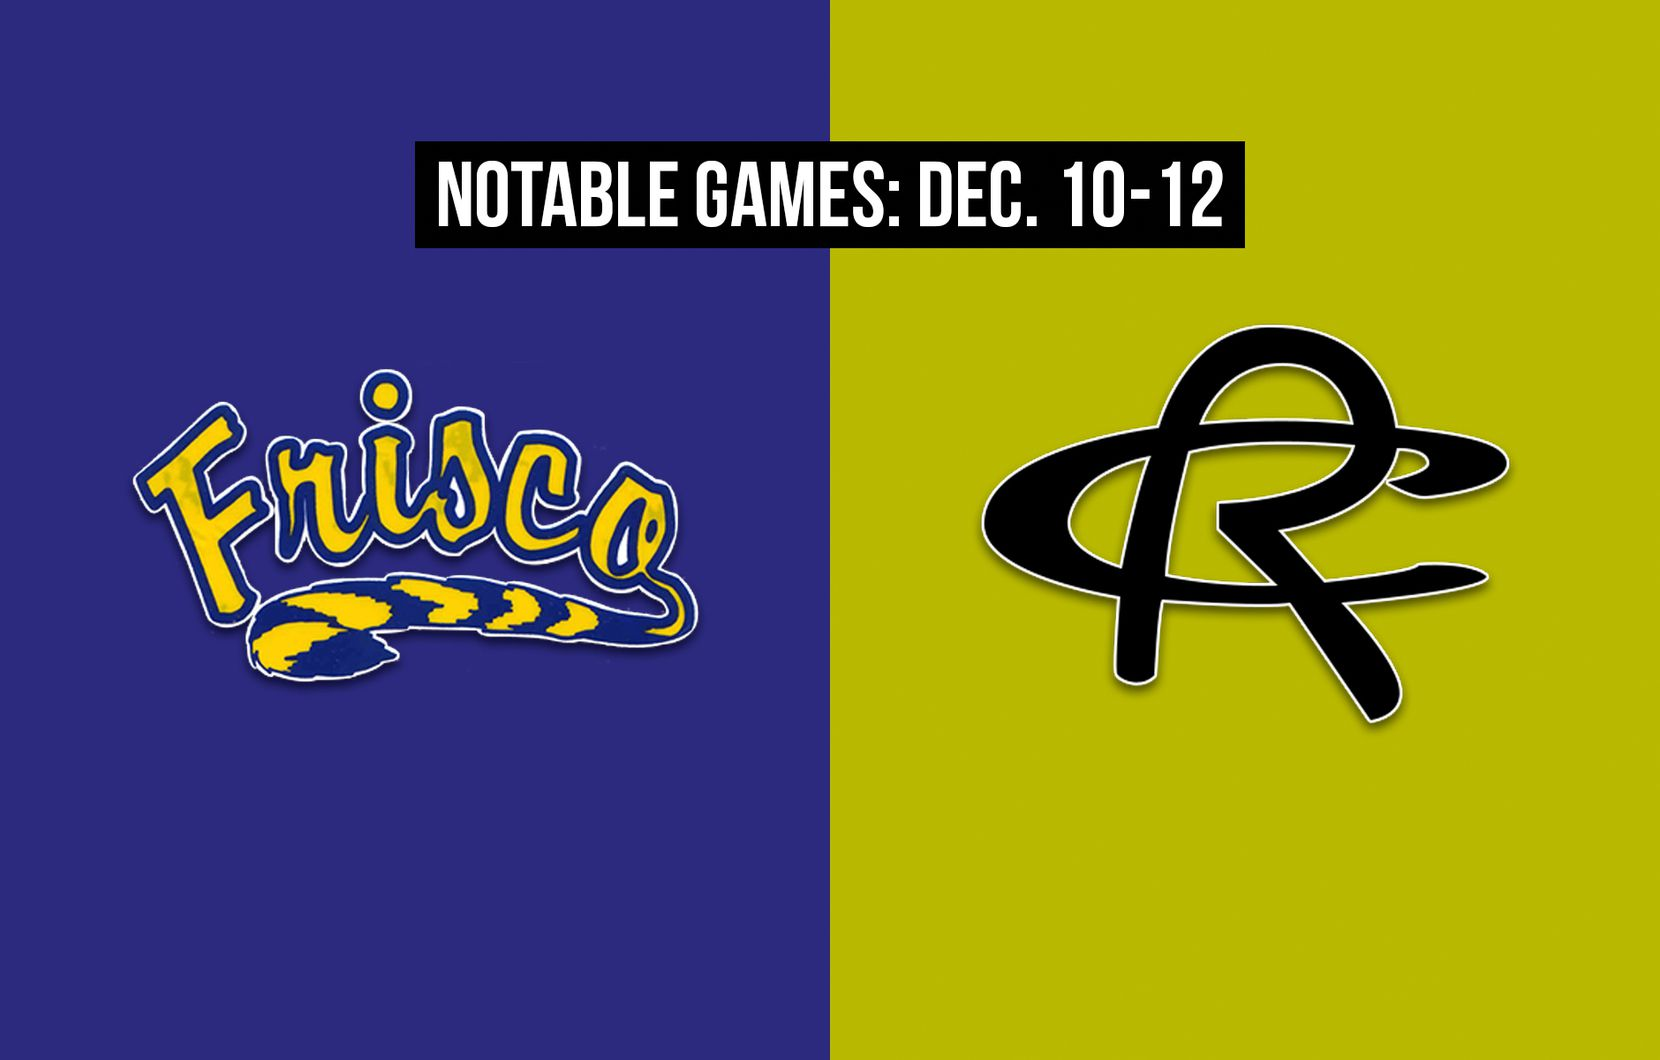 Notable games for the week of Dec. 10-12 of the 2020 season: Frisco vs. Royse City.